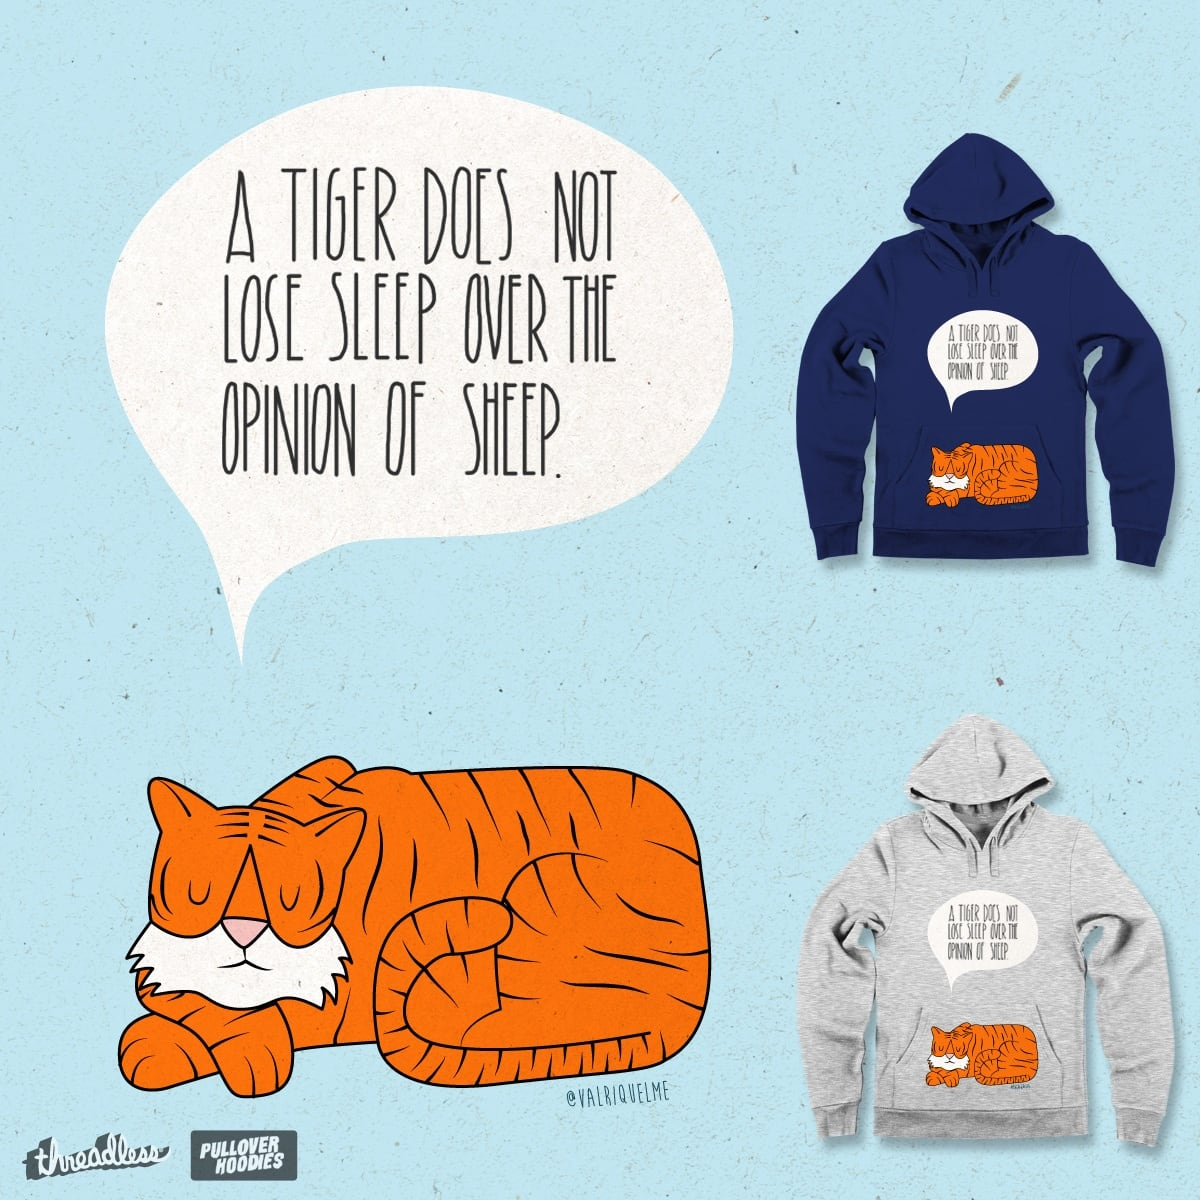 Tiger & Sheep by valriquelme on Threadless